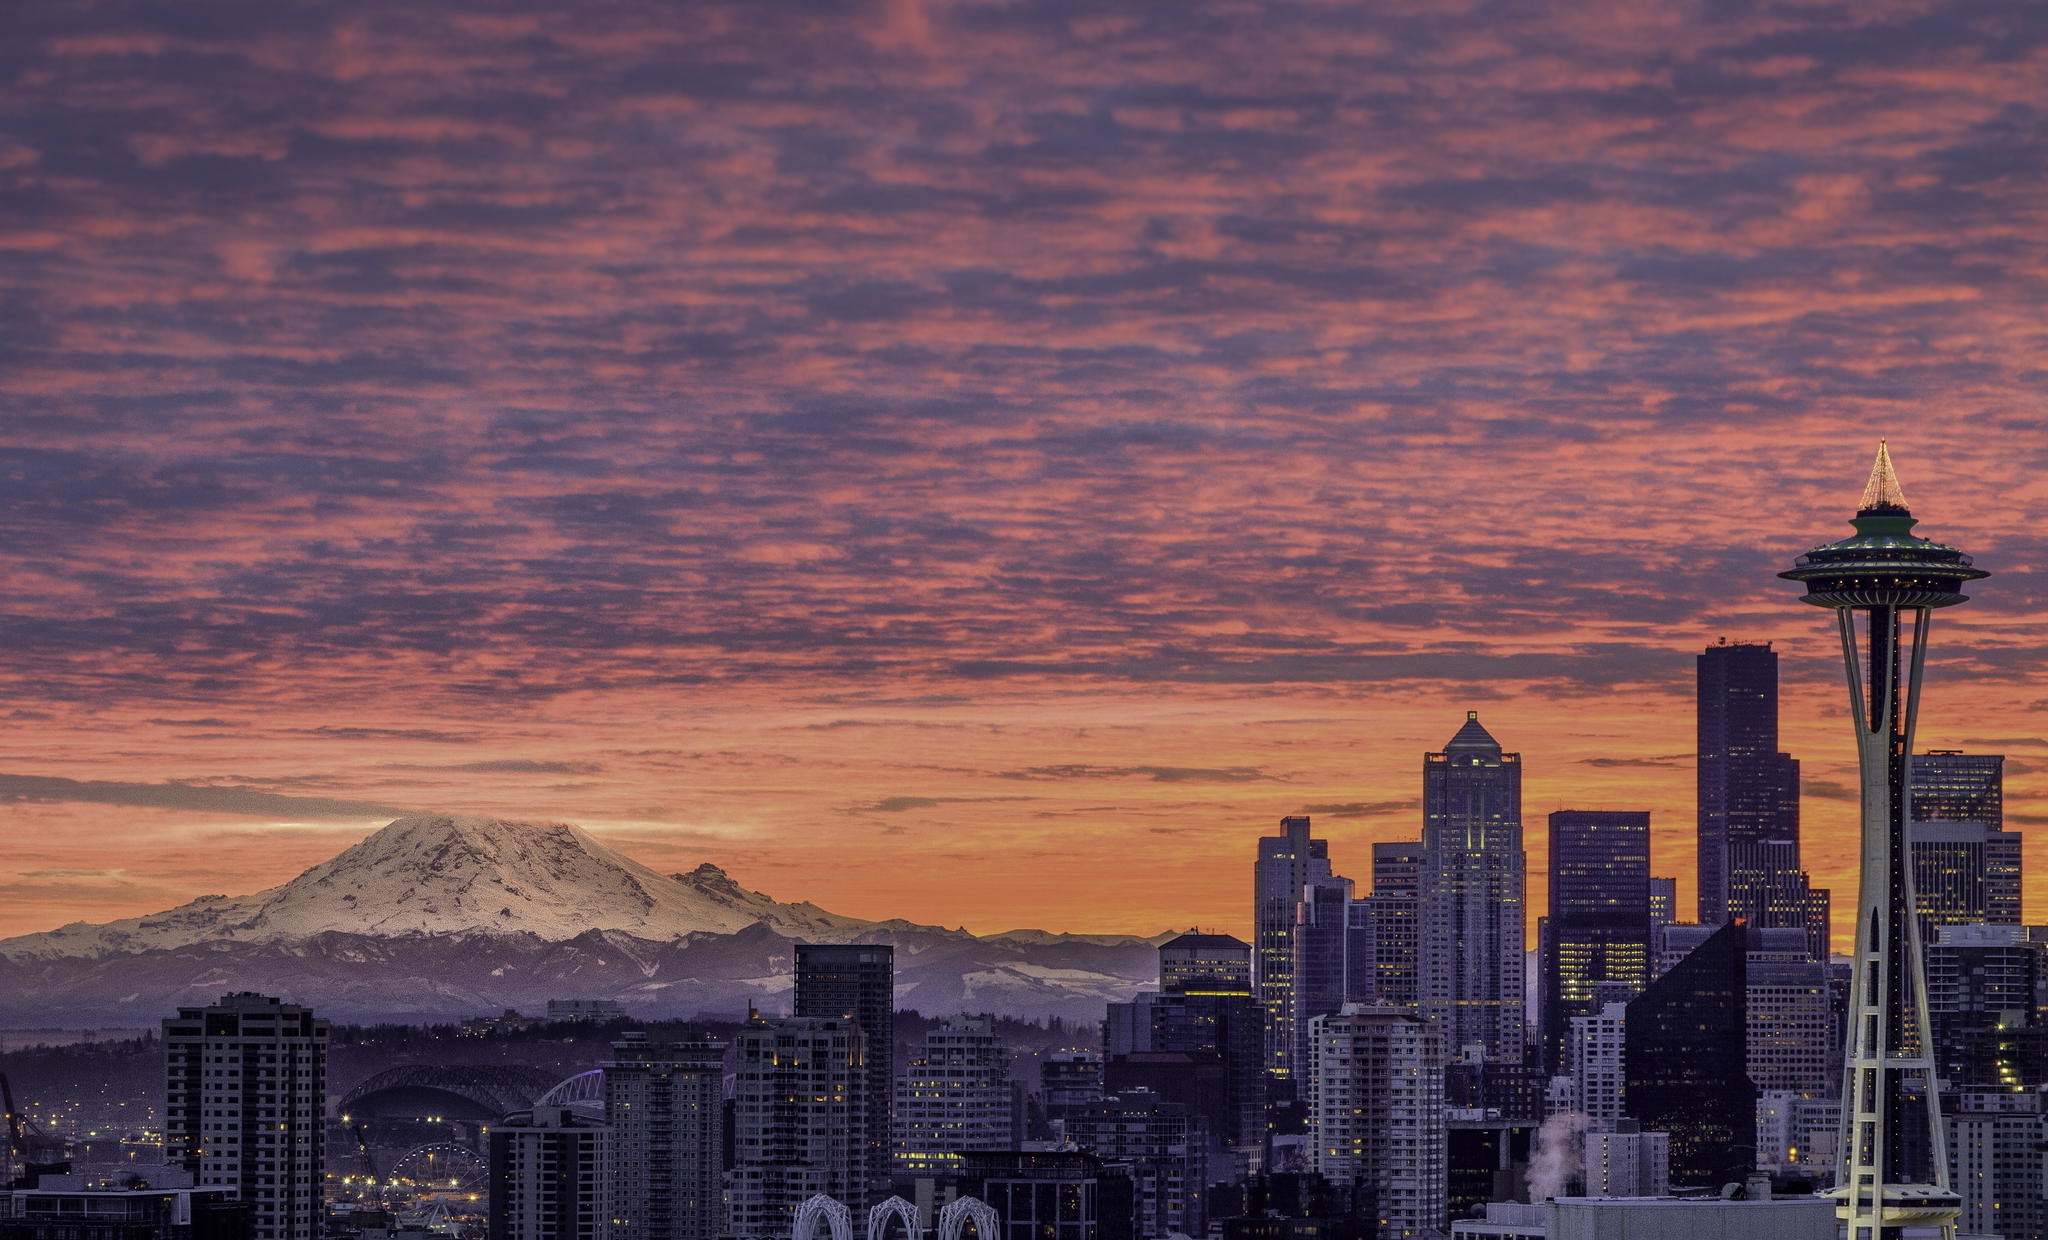 Seattle Sunset Wallpaper 20317 2048x1240   uMadcom 2048x1240